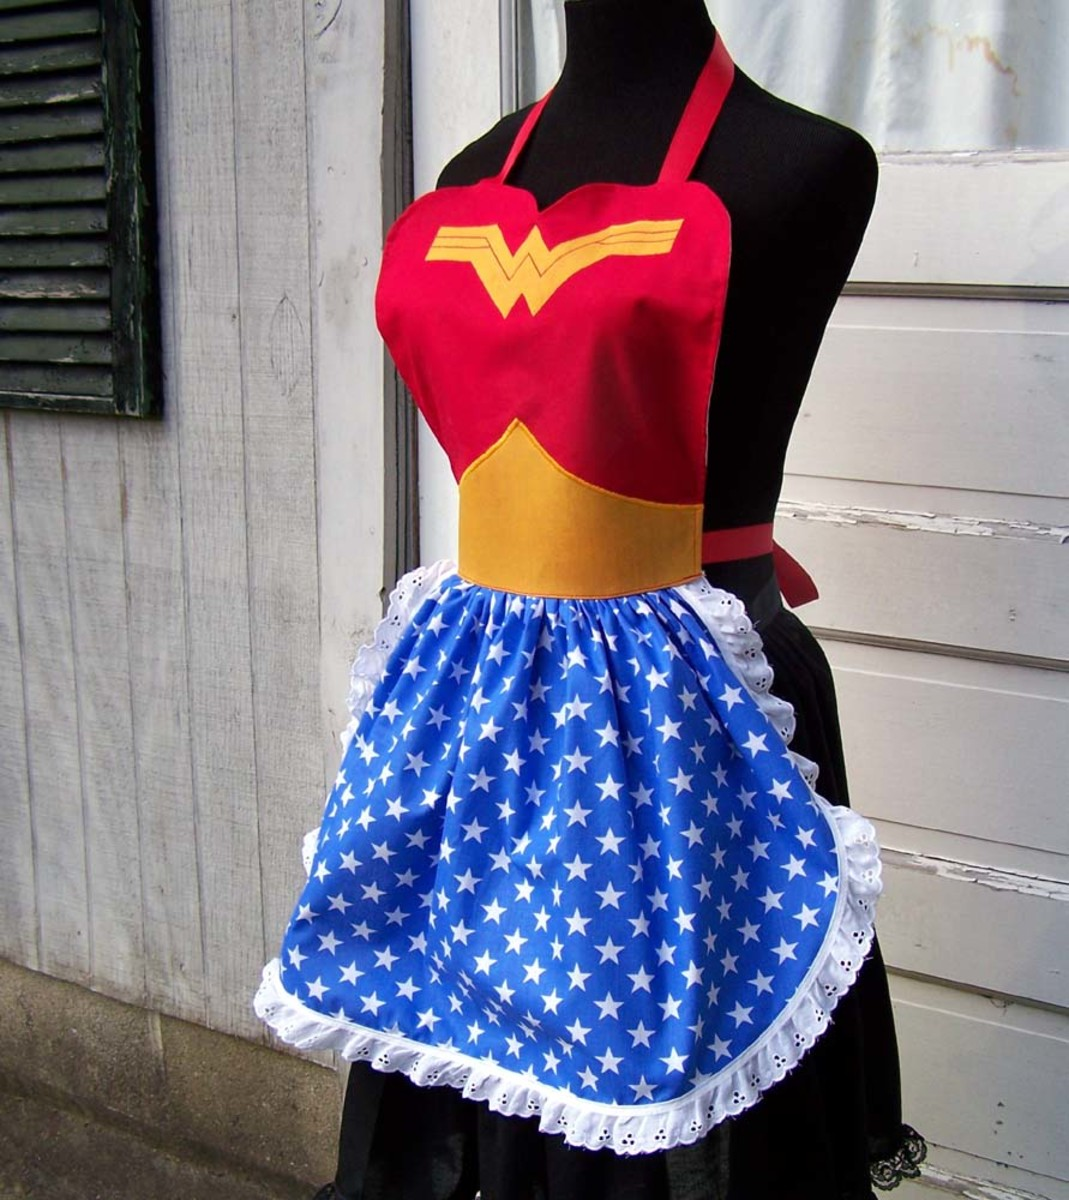 Wonder Woman apron - do you think Princess Diana aka WW can actually cook?  This apron would look great over your clothes at the next Halloween party if you are looking for a simple but funny costume idea.